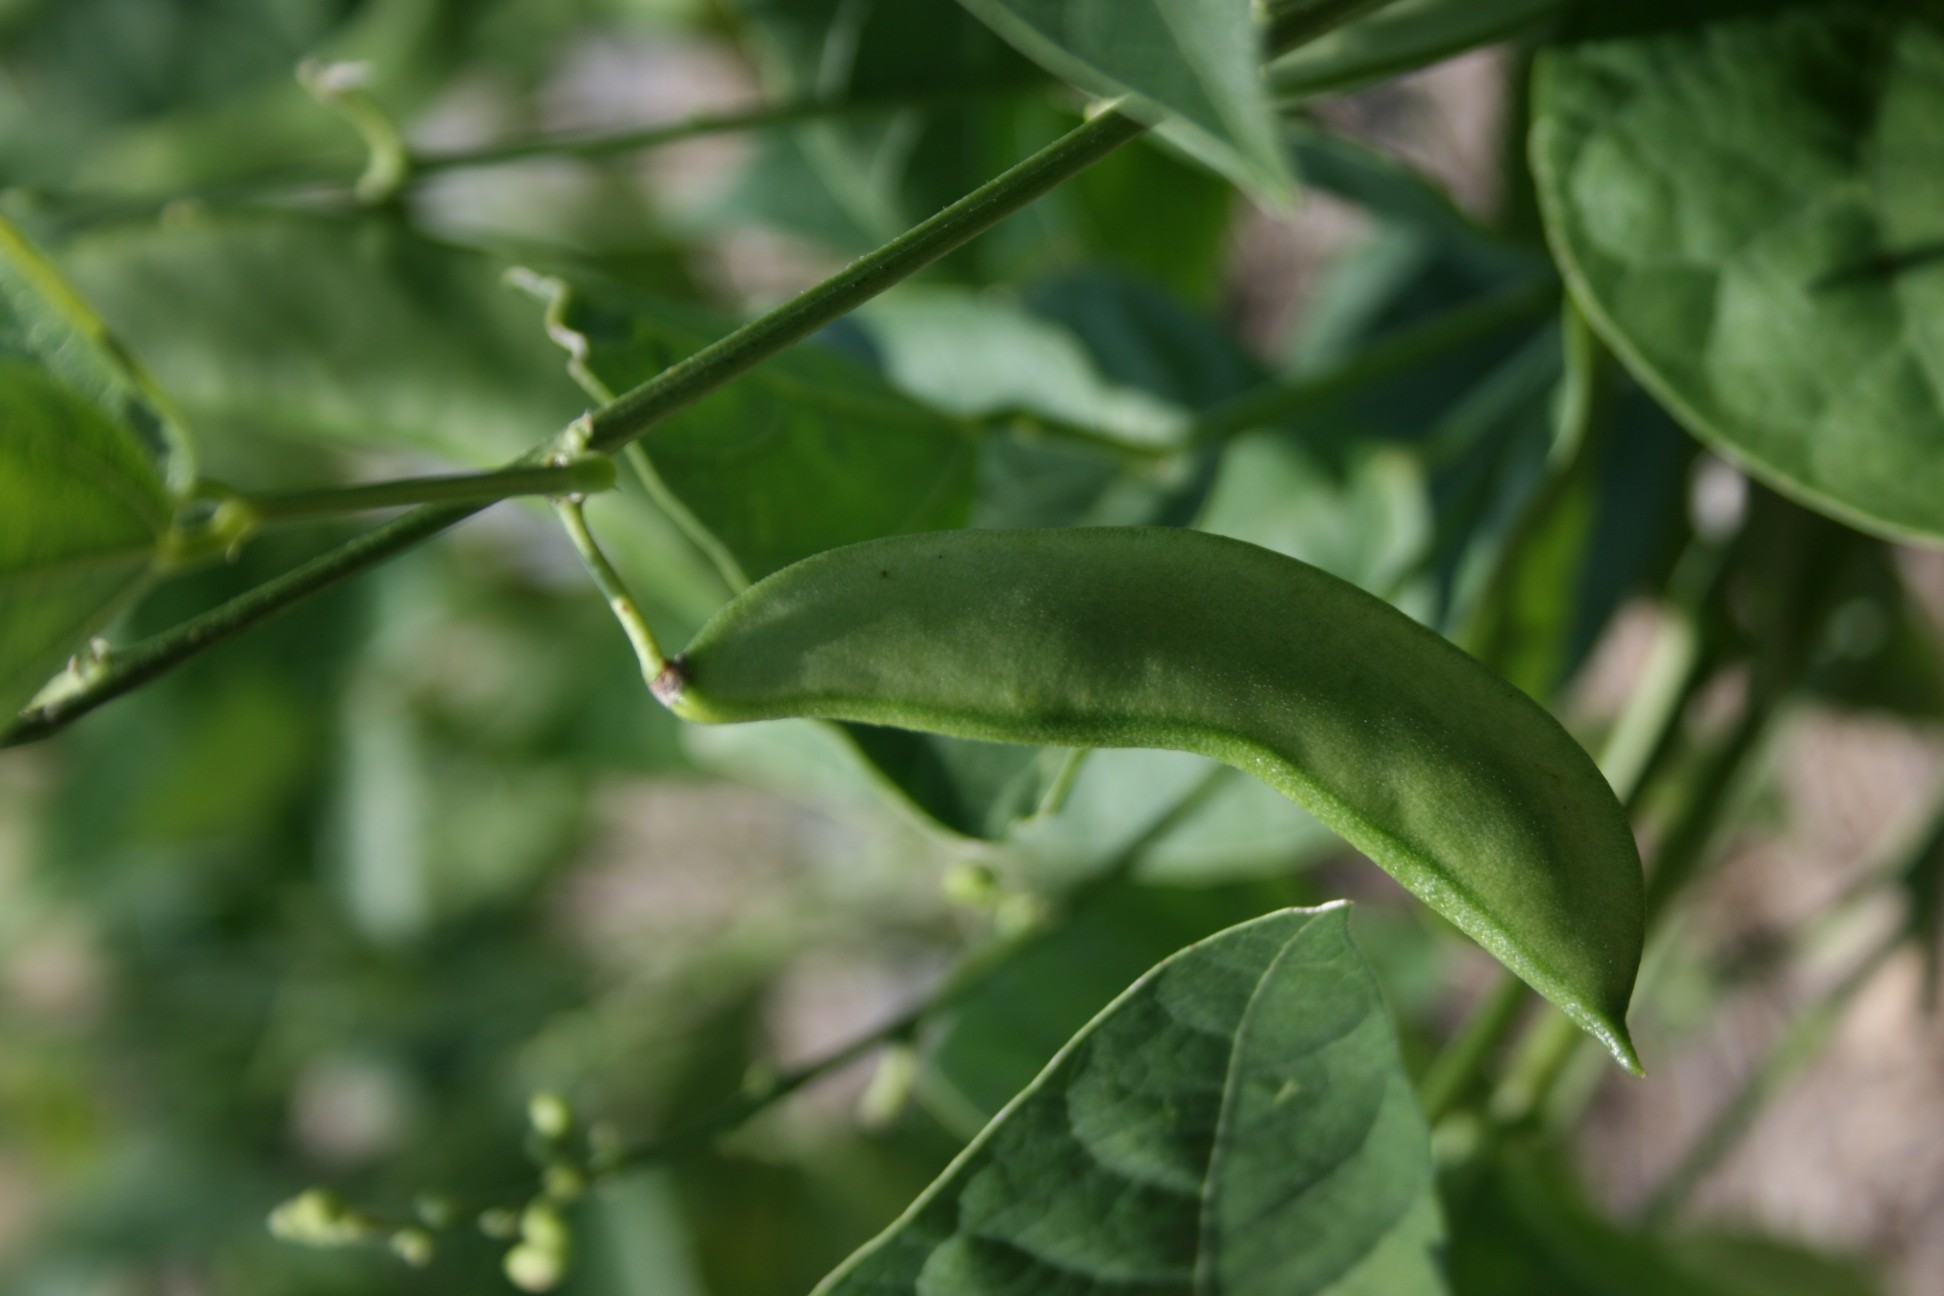 ... not to mention my bean plants produce mature pods at different rates ...